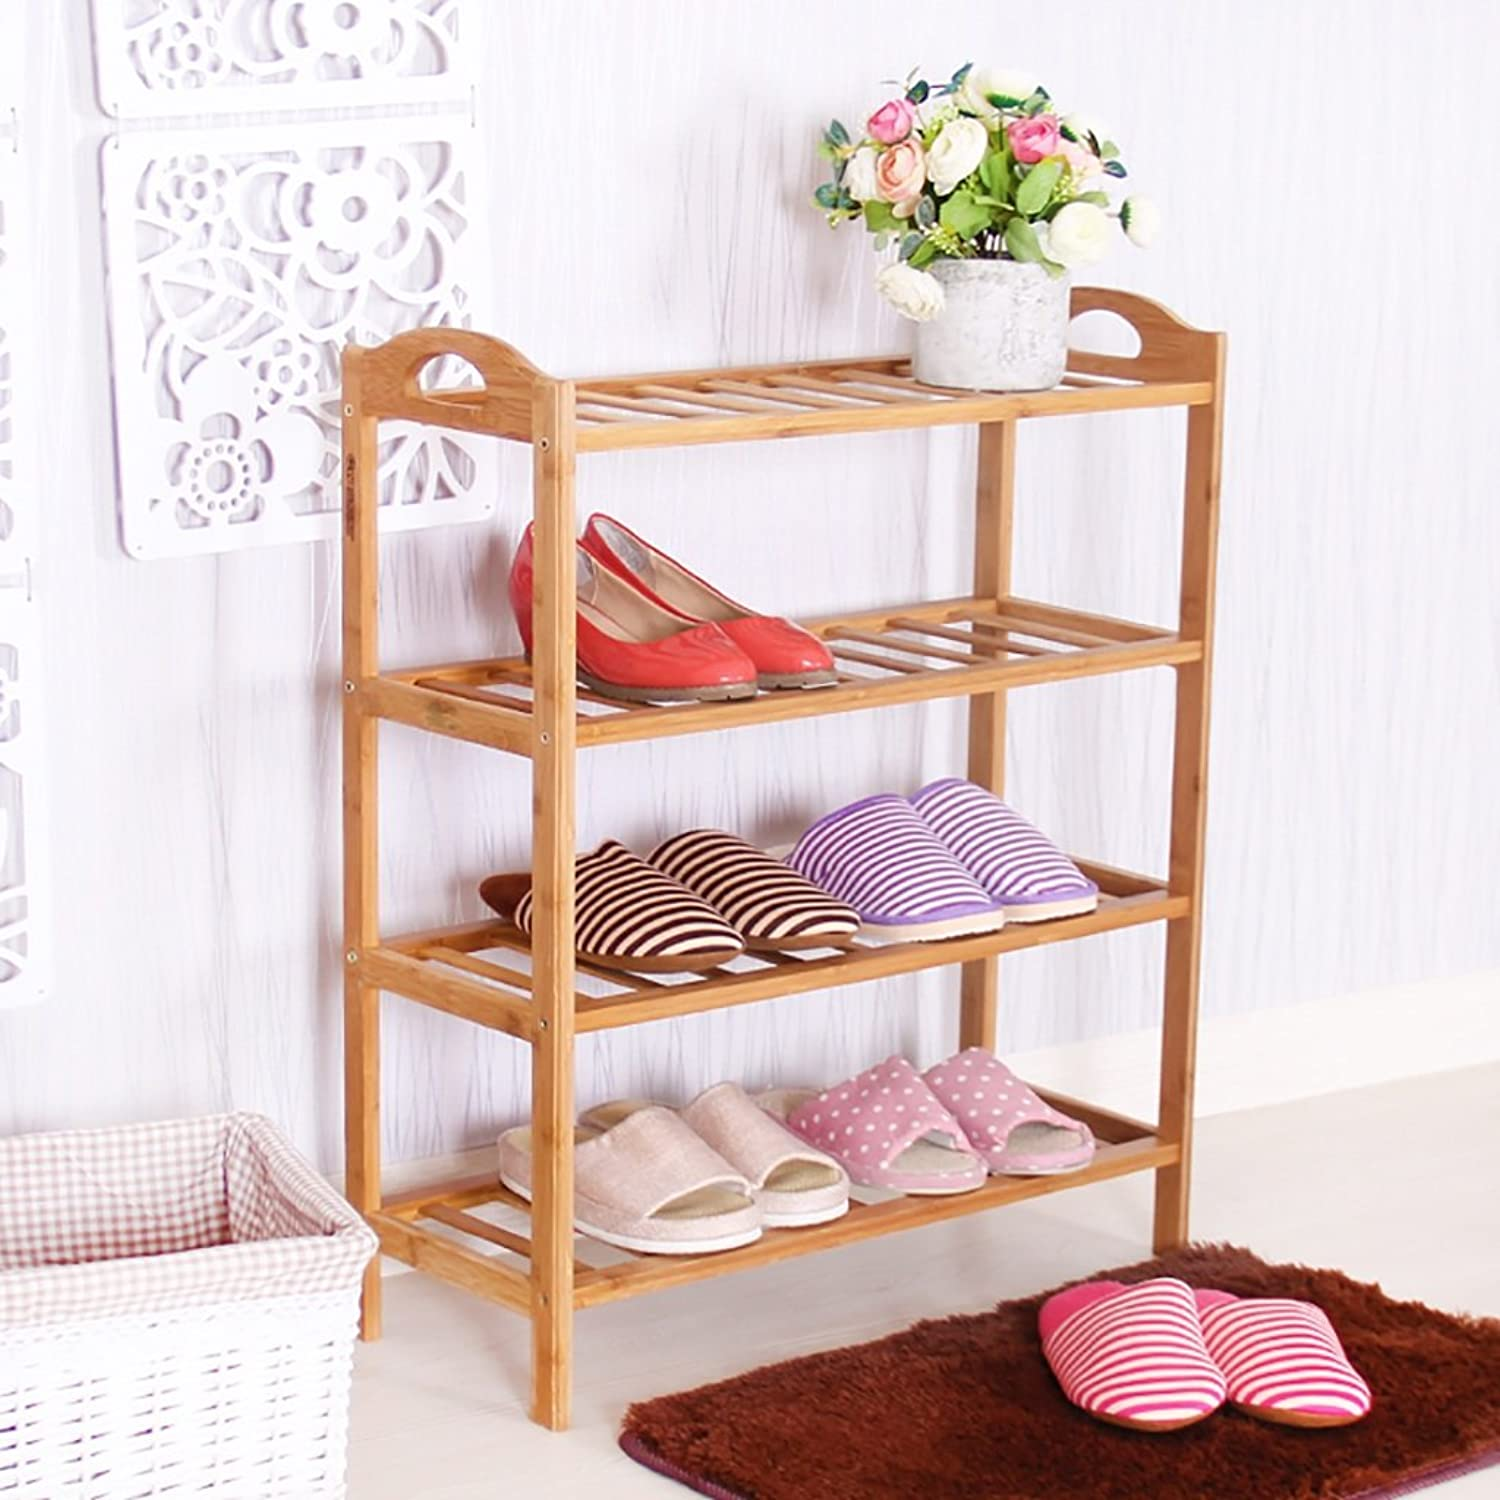 shoes Bench Organizing Rack Bamboo shoes Rack Door Dormitory Home Living Room Storage Frame Creative Multi - Storey European Wooden shoes Rack (Size   58cm)